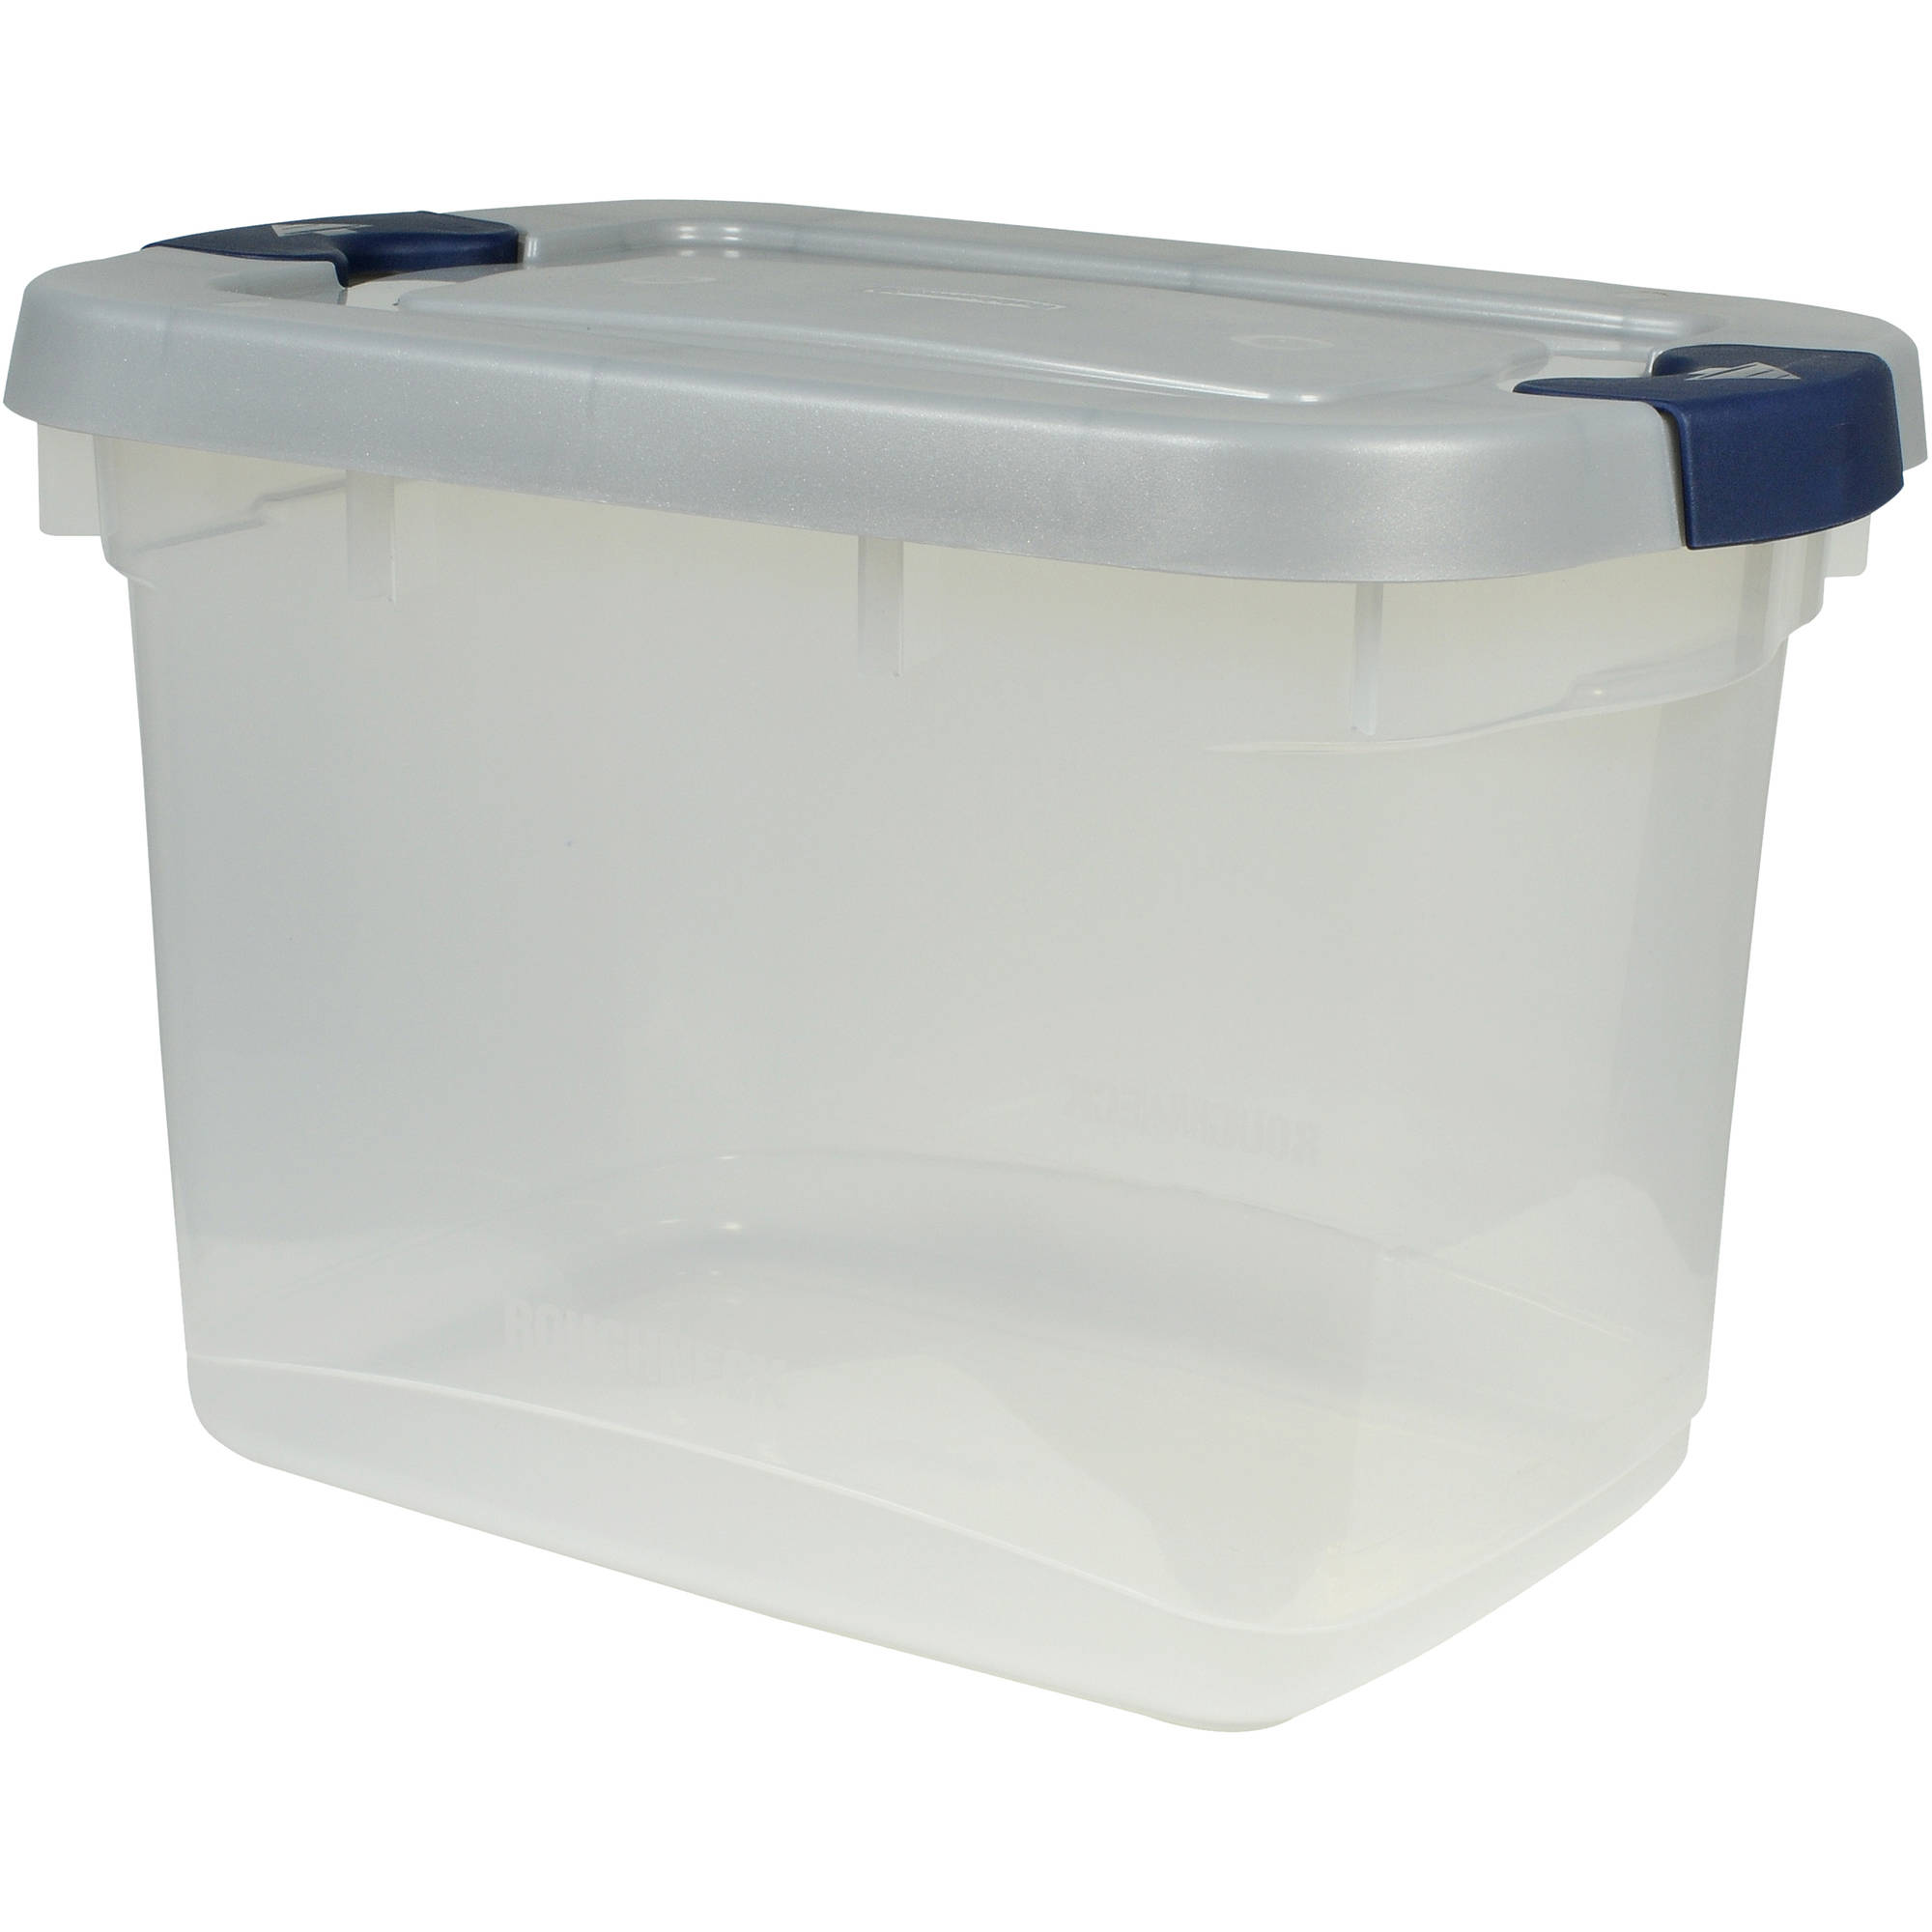 Rubbermaid Roughneck Clear Storage Tote Bins, 19 Qt (4.75 Gal), Clear with Gray Lid, Set of 8